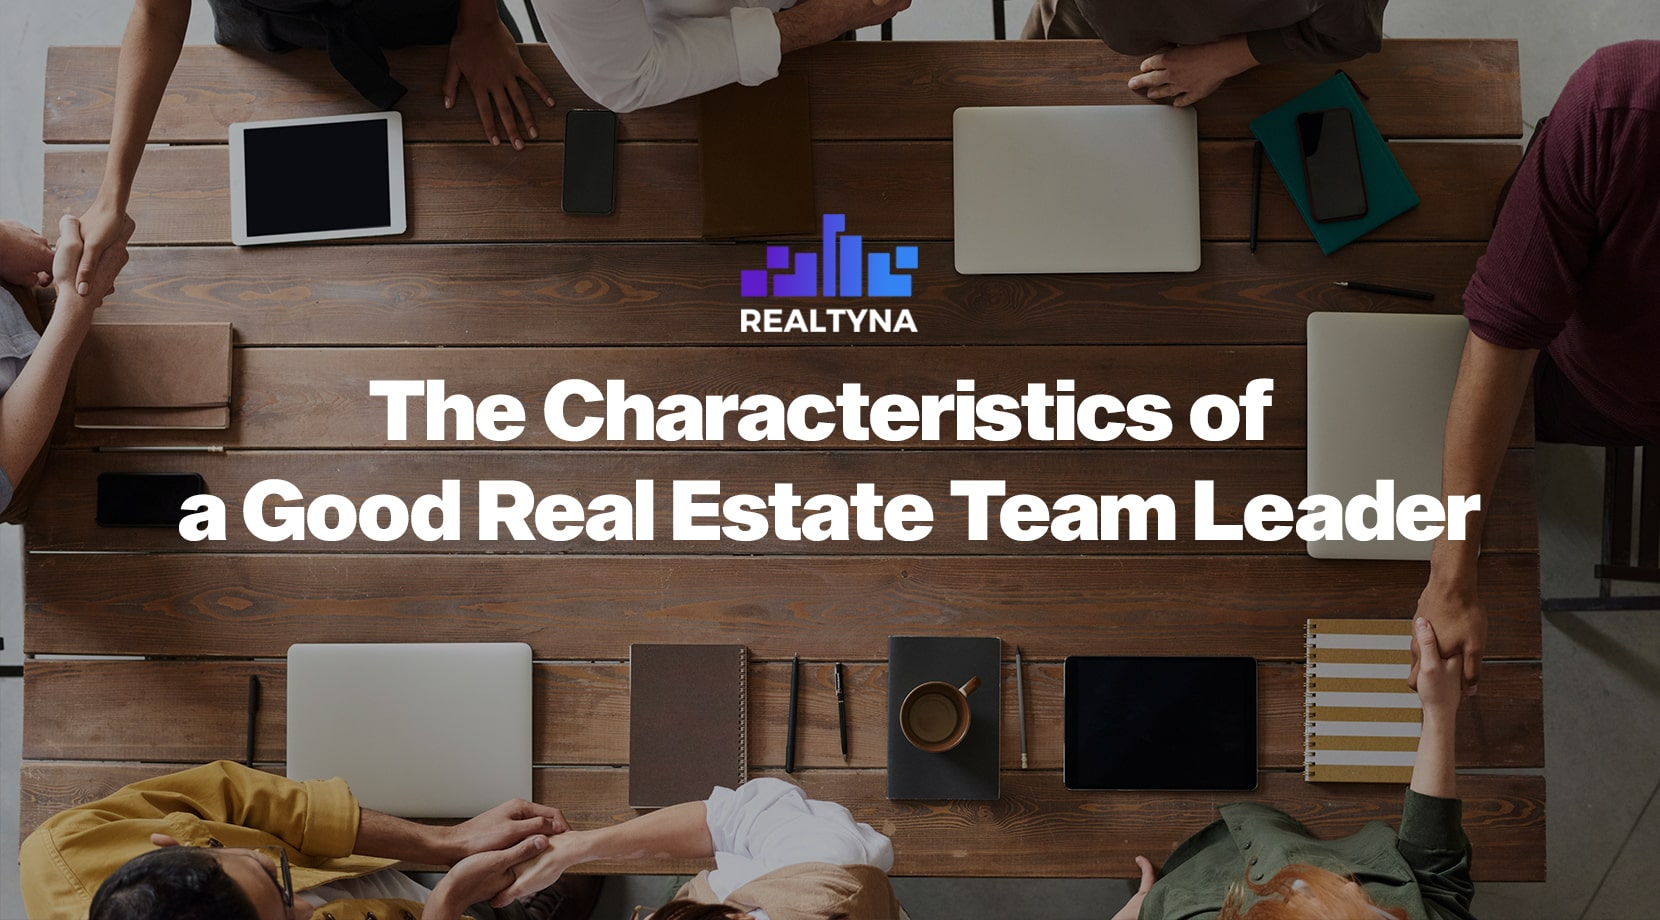 The Characteristics of a Good Real Estate Team Leader